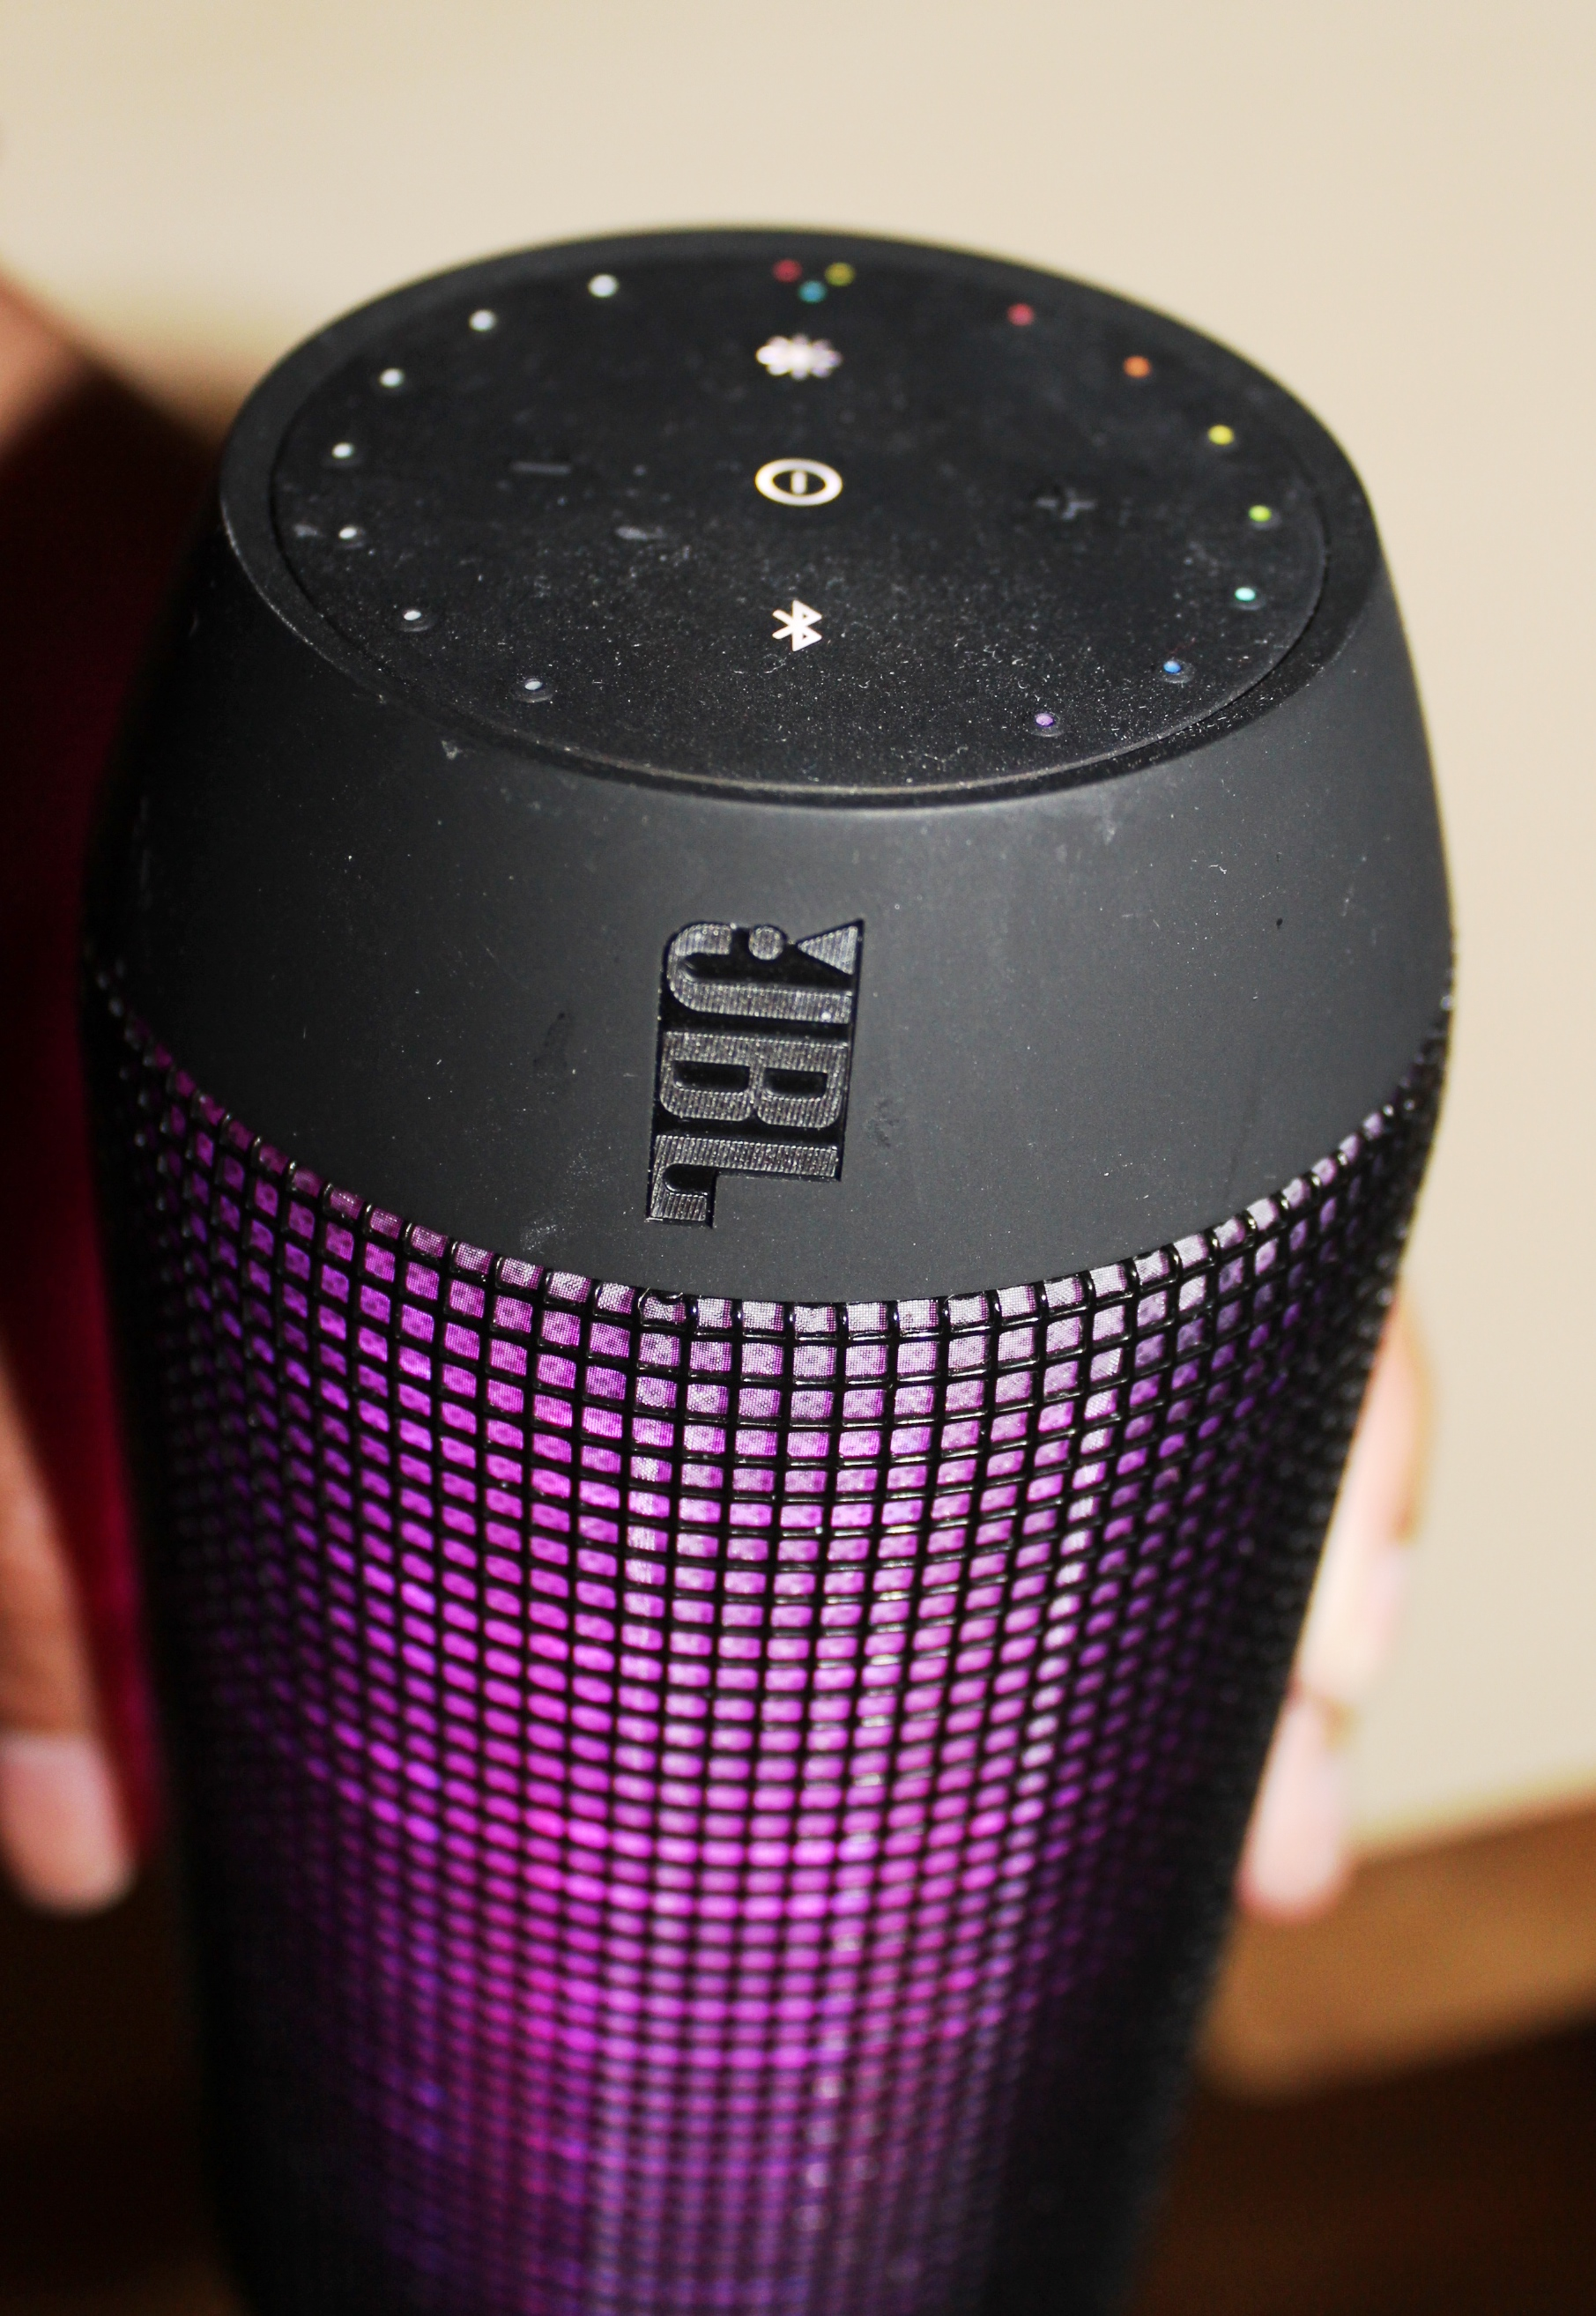 Jbl Pulse Wireless Speaker Review on battery equalizer